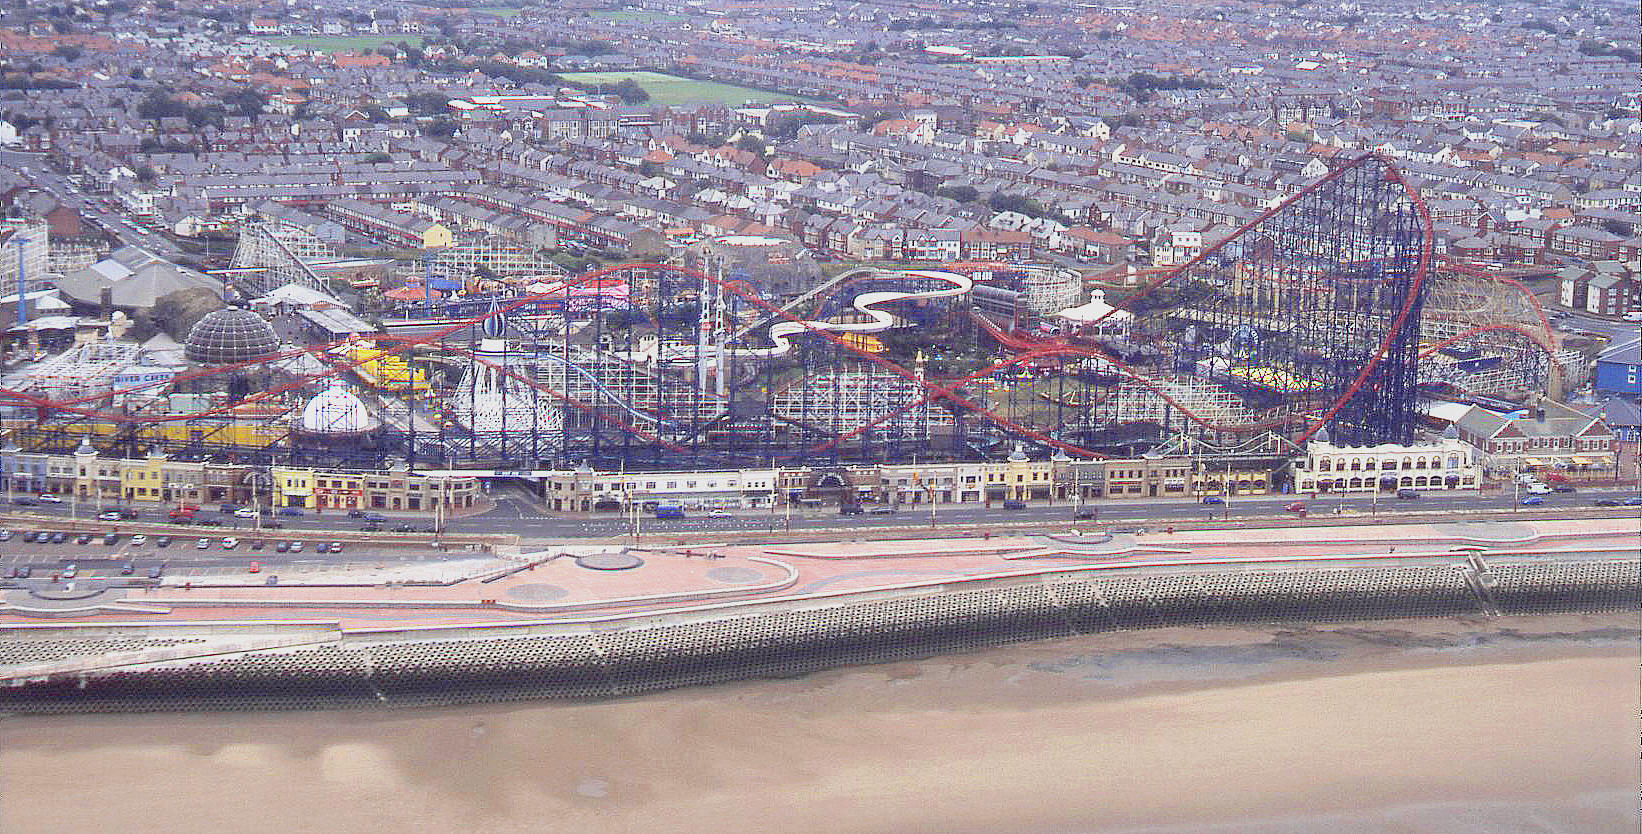 Blackpool Pleasure Beach seen on a dull day in 2003